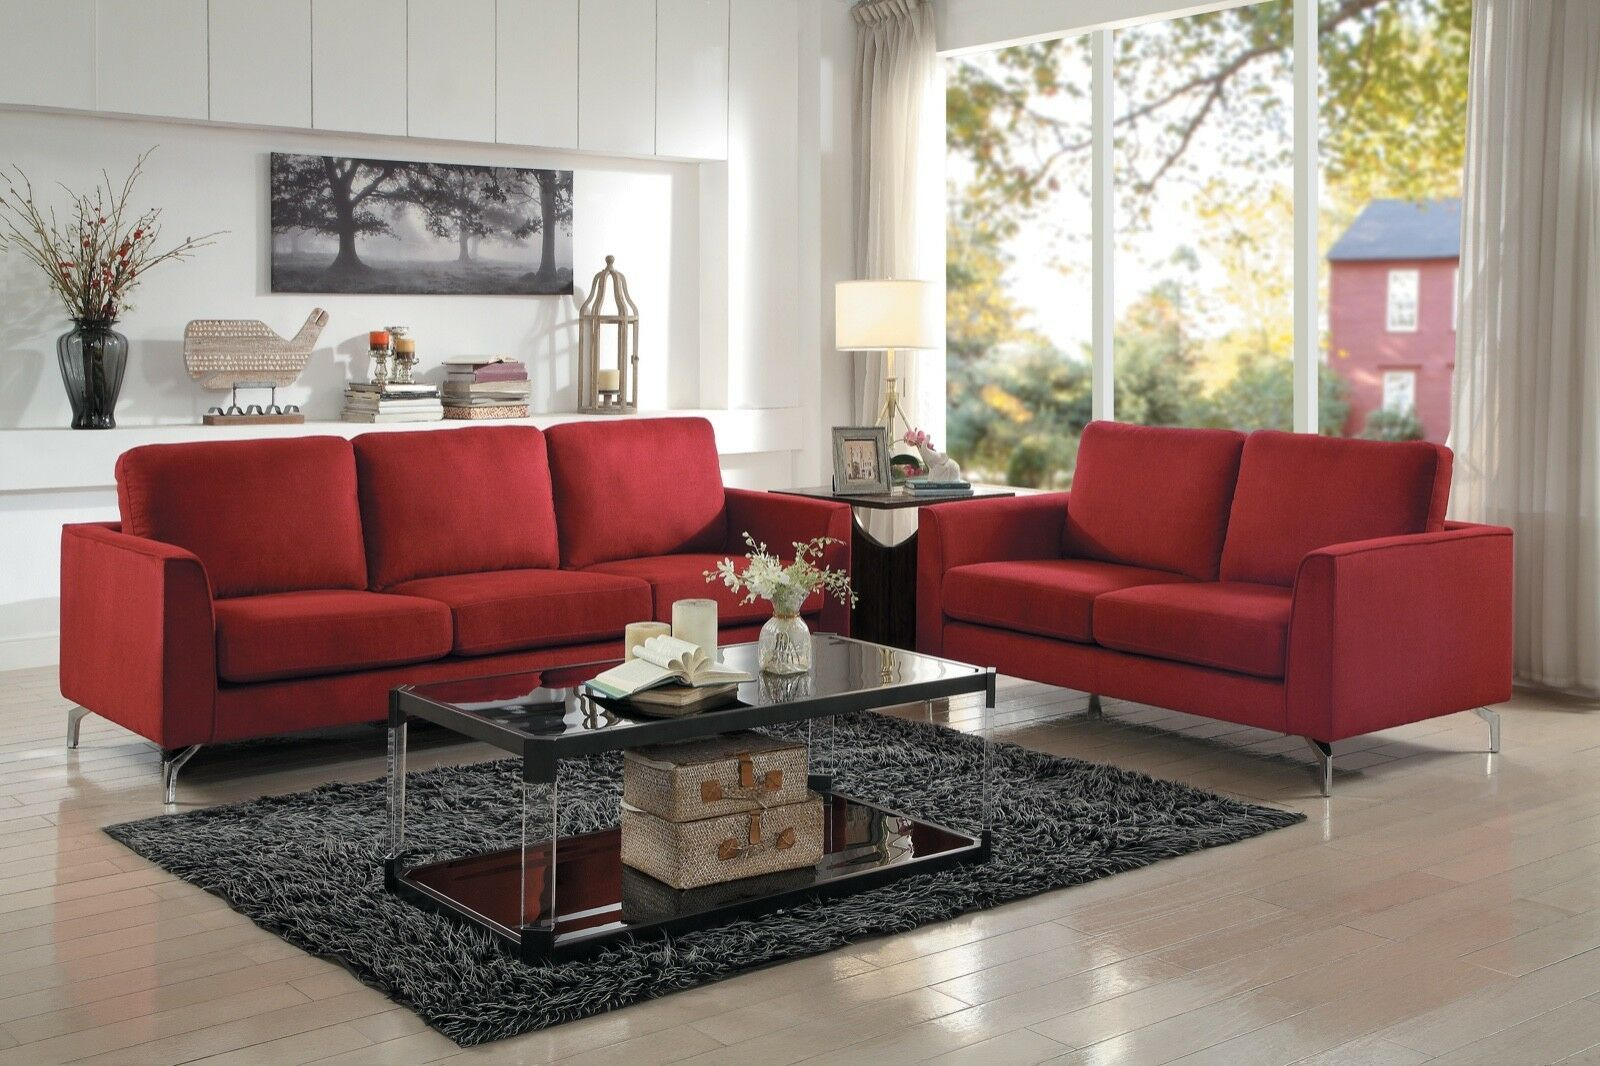 Contemporary Red Sofa Couch Loveseat Living Room Furniture Set Sale 875 0 Living Room Furniture Living Room Red Loveseat Living Room Red Fabric Sofa